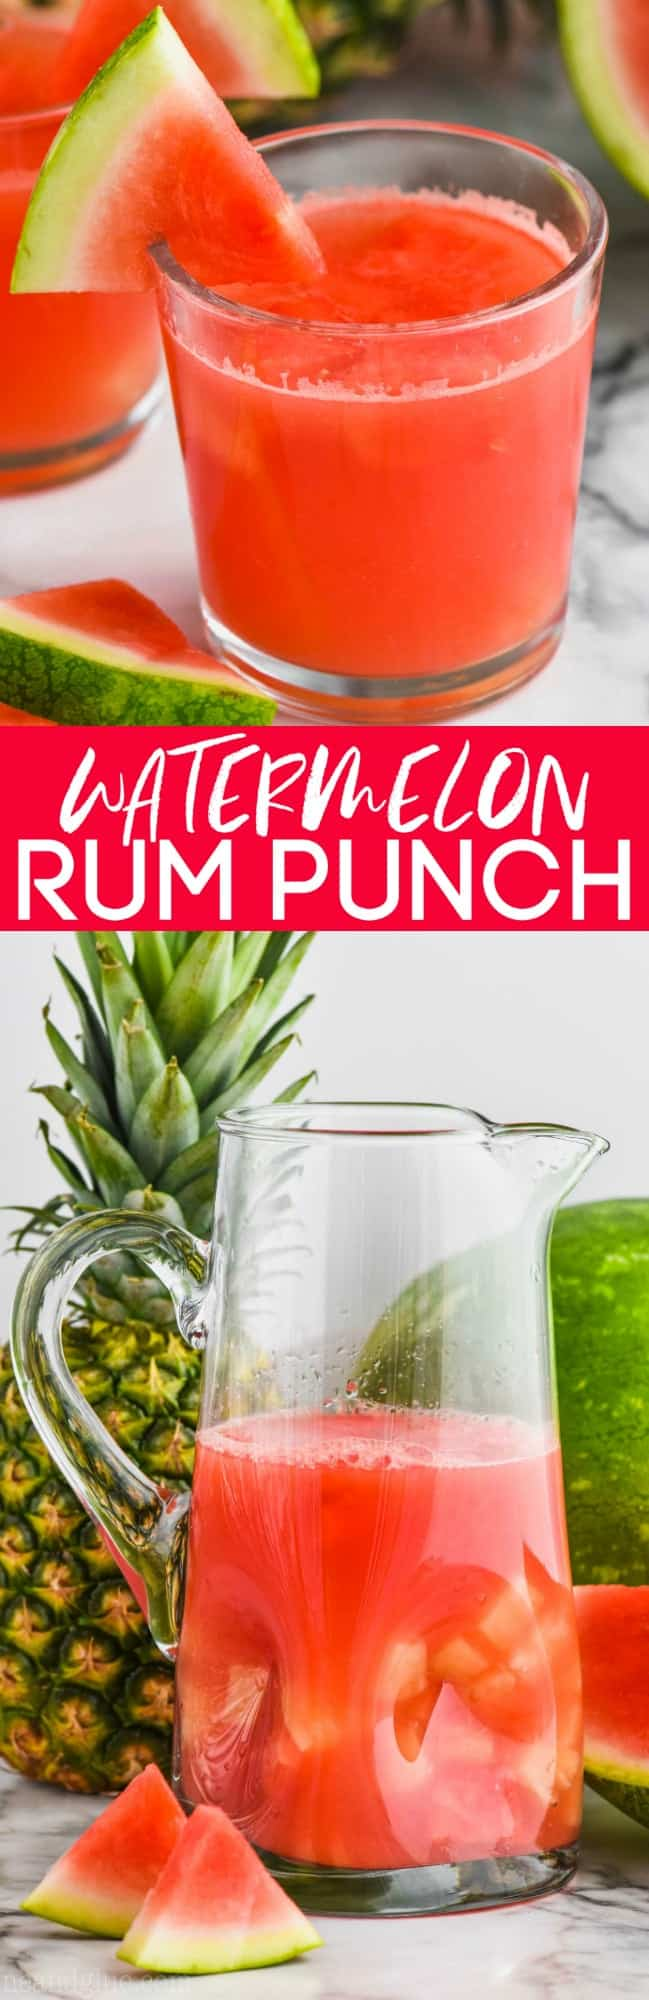 collage of photos of watermelon rum punch